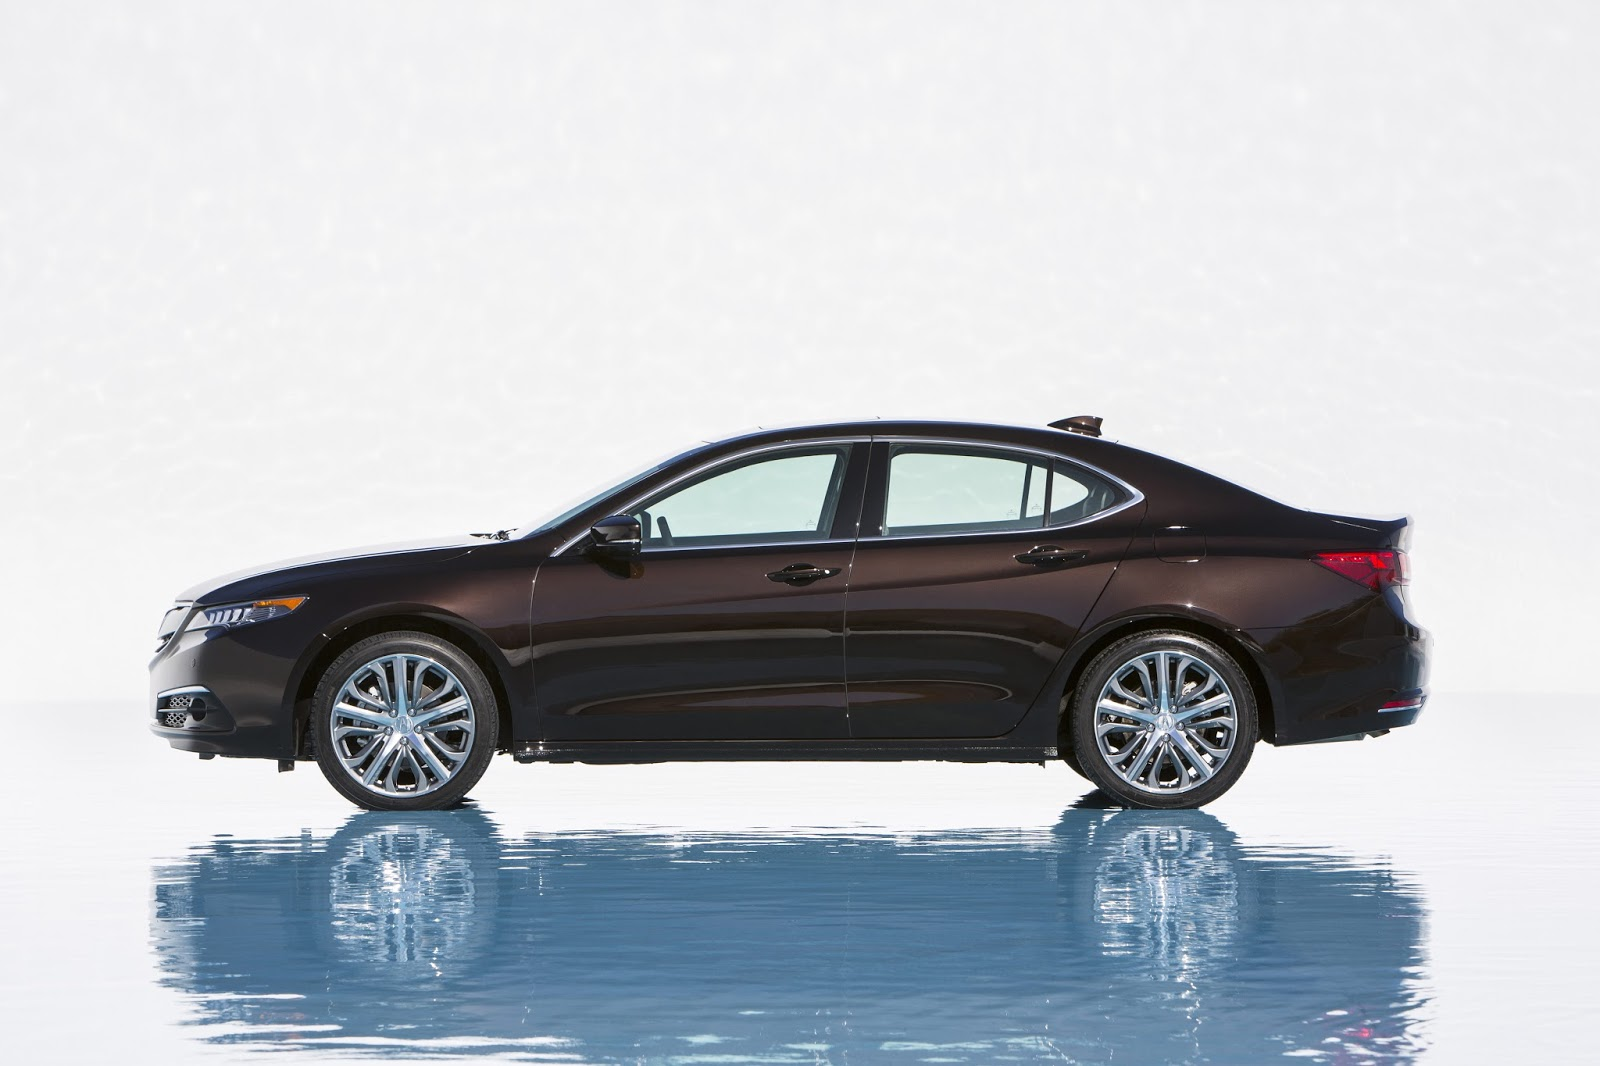 2014 - [Acura] TLX - Page 2 Acura-2015-TLX-10